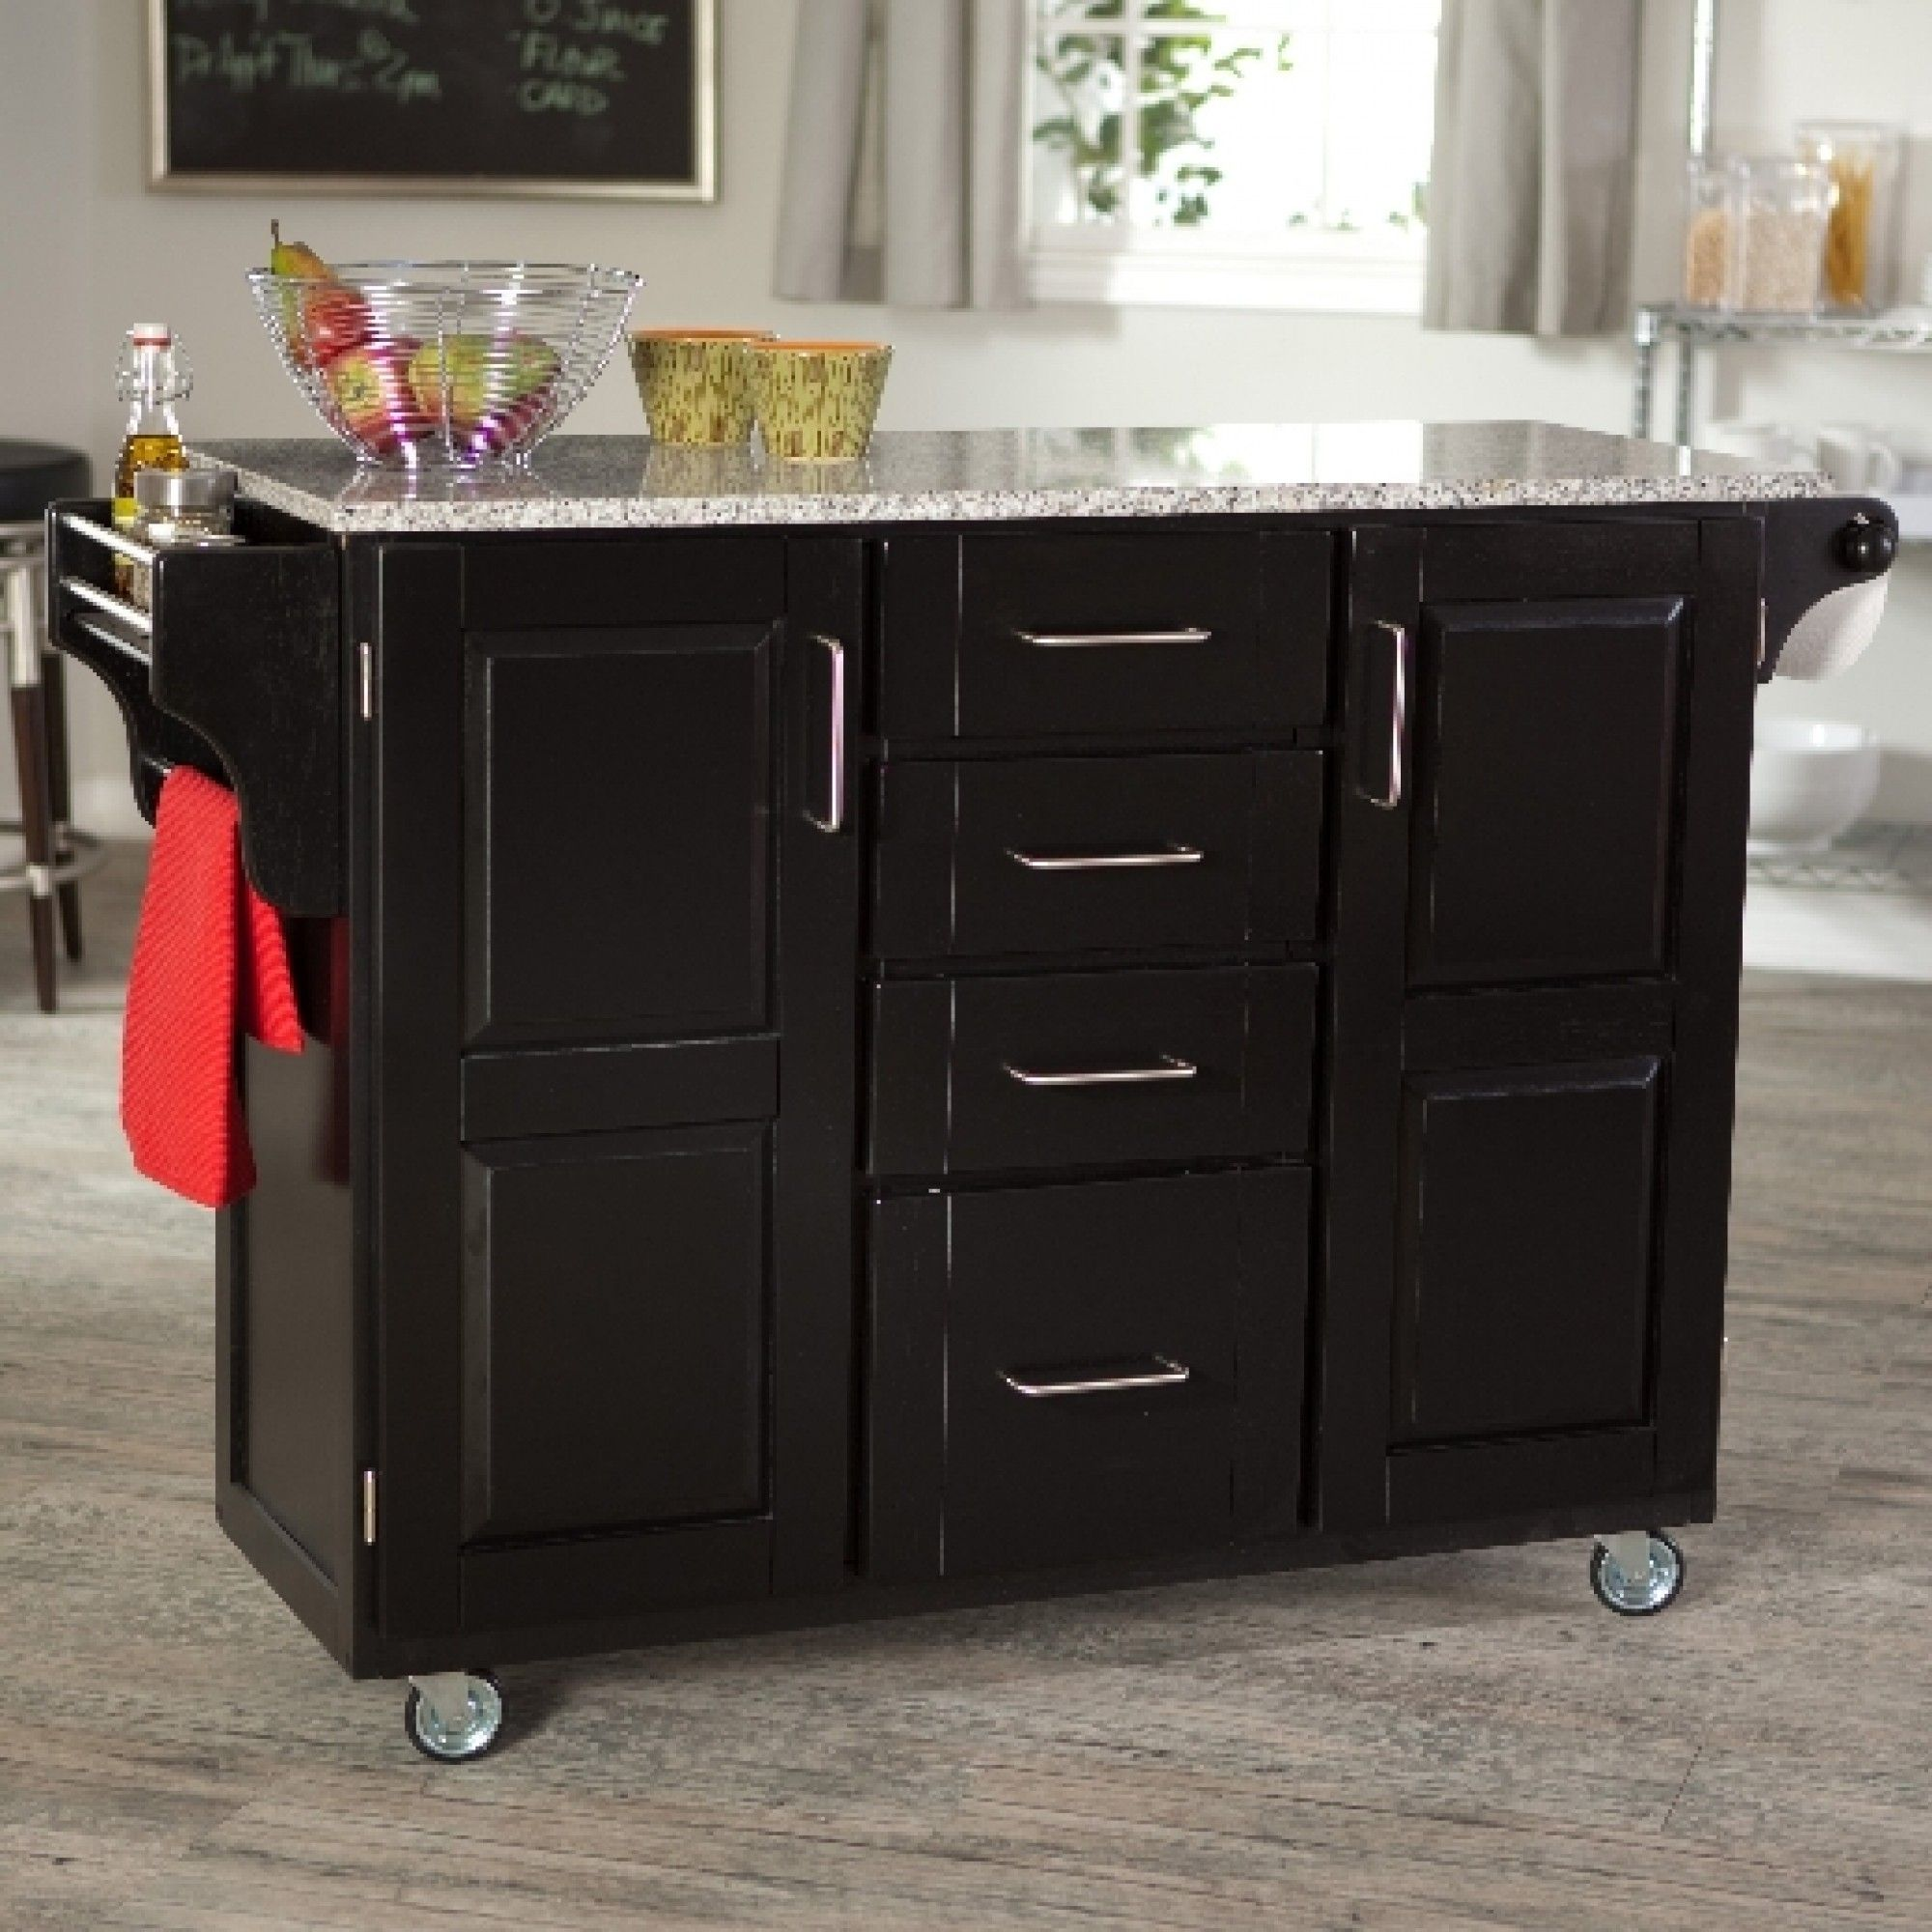 Kitchen Furniture Vintage Wooden Portable Island With Black Awesome Rolling Kitchen Chairs Design Ideas